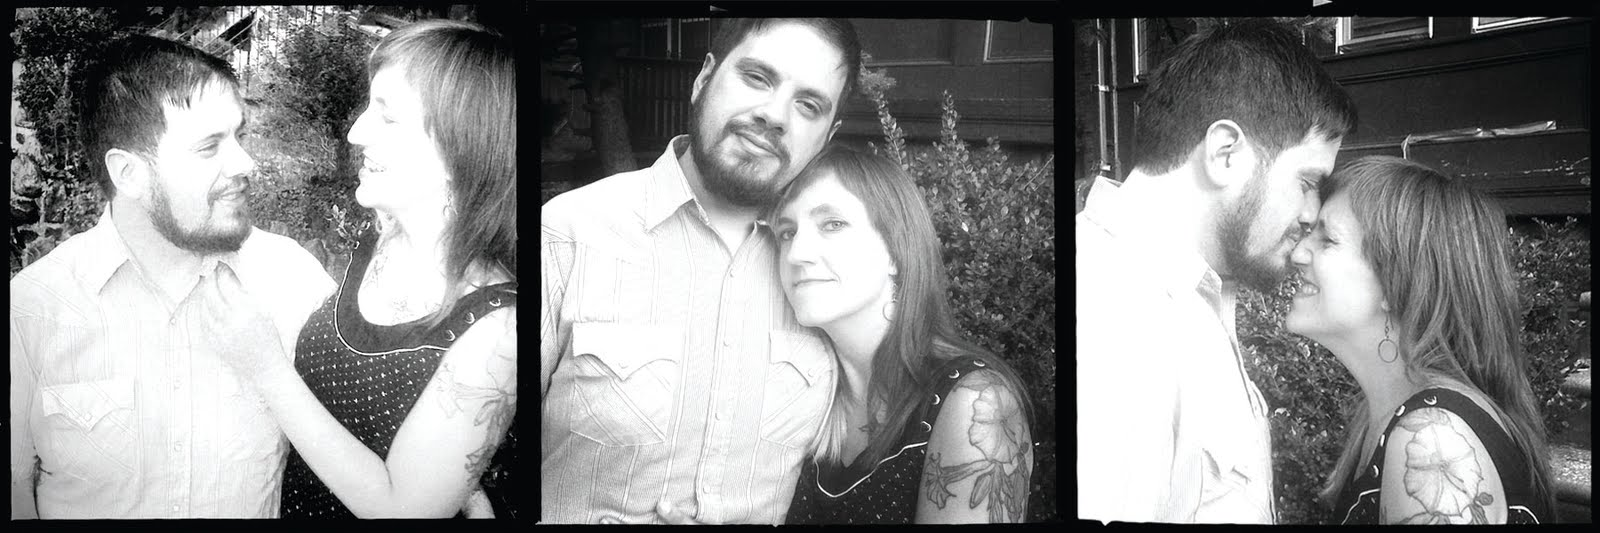 Sharon and Mike 5-26-12